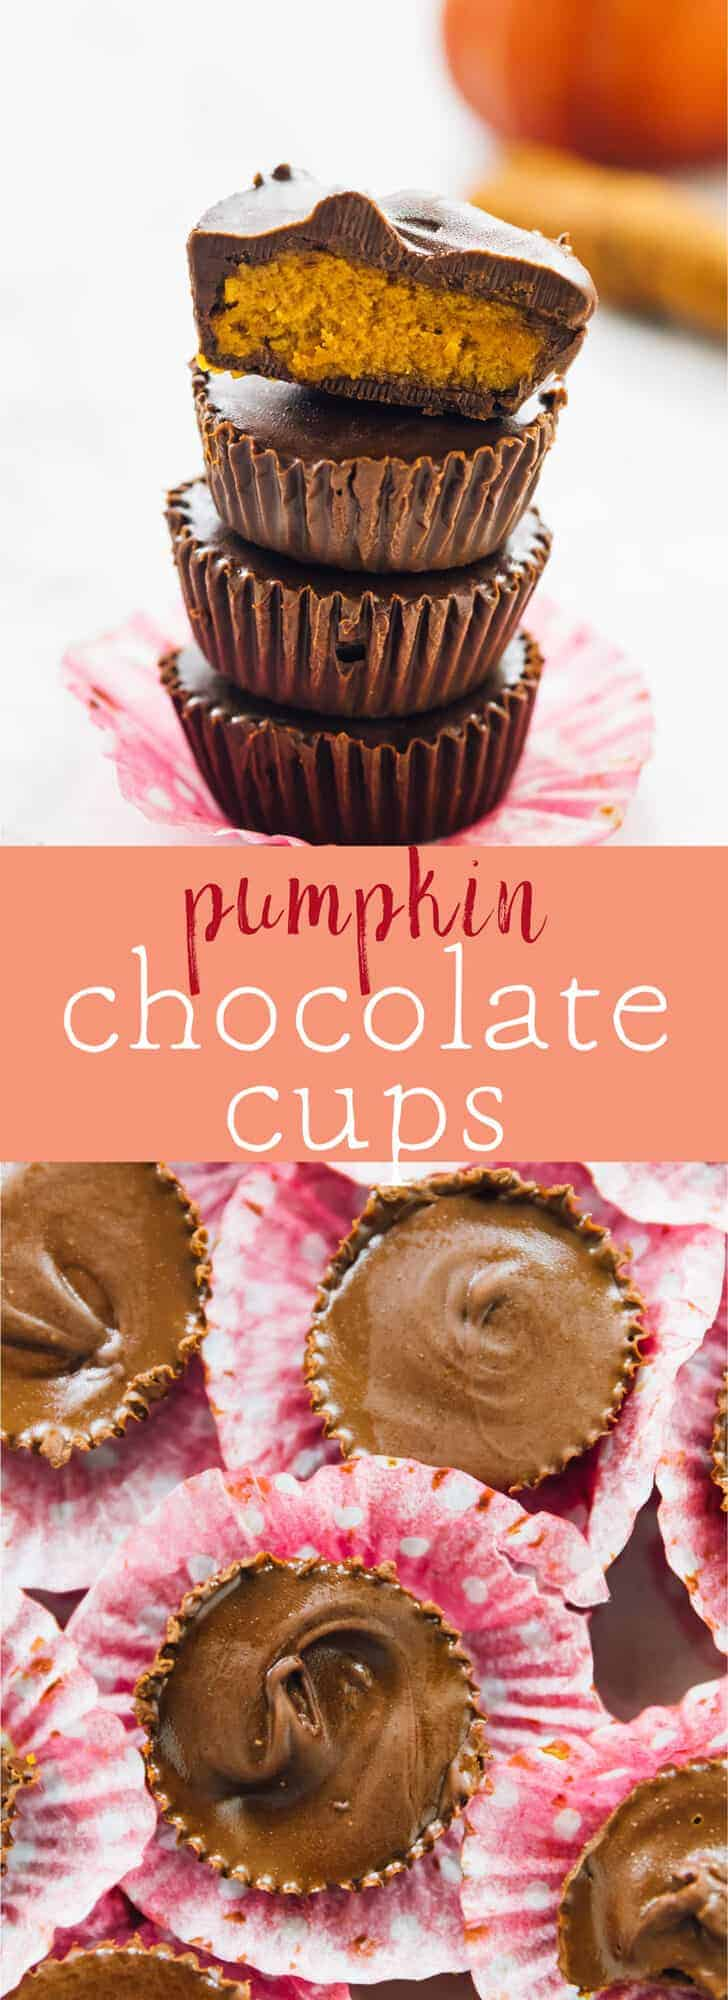 These Pumpkin Chocolate Cups are a delicious holiday candy treat! They're packed with yummy pumpkin flavour, are easy to make and are vegan and gluten free! via https://jessicainthekitchen.com